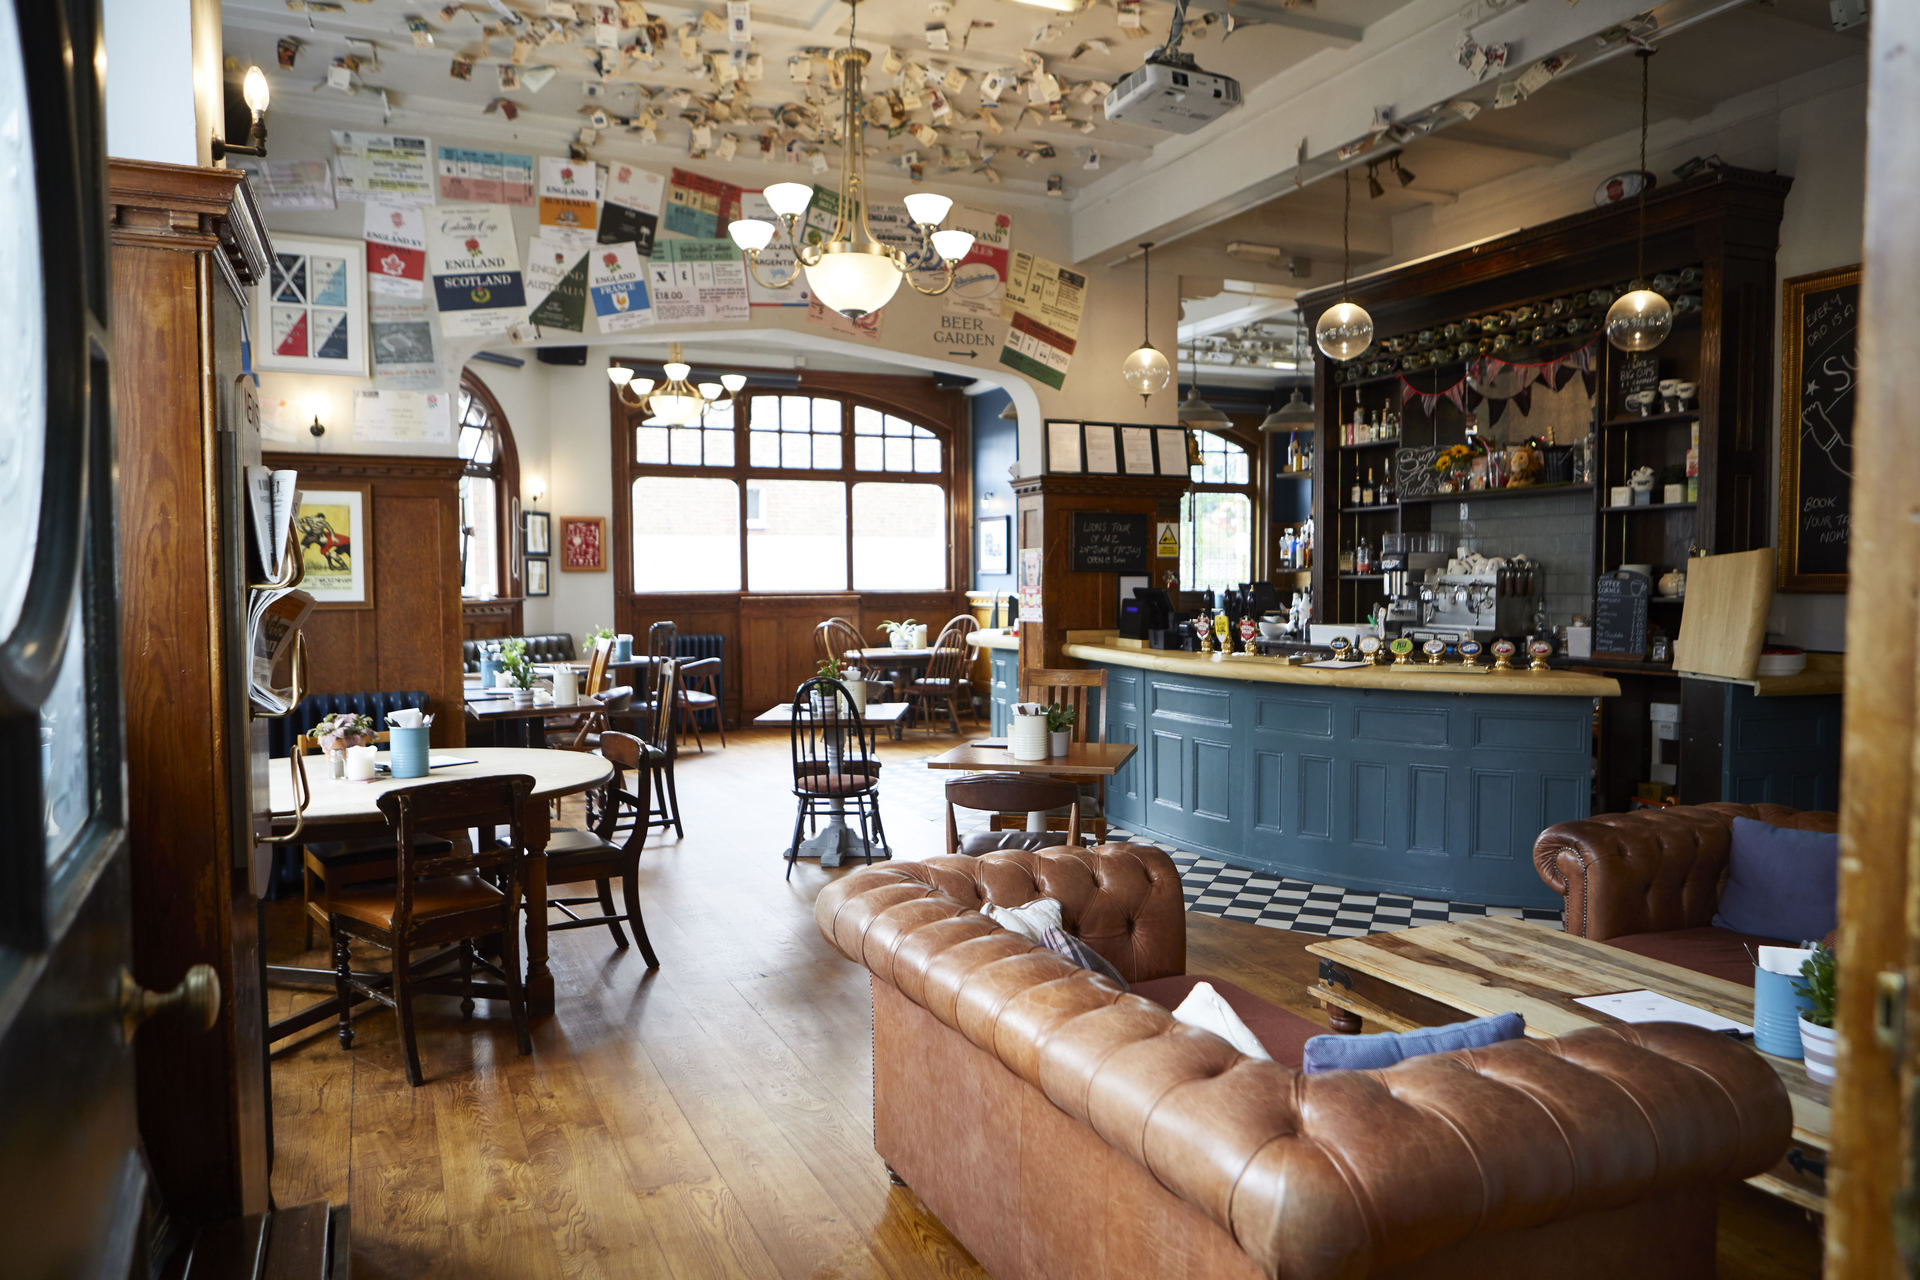 London's best rugby pubs The Turk's Head